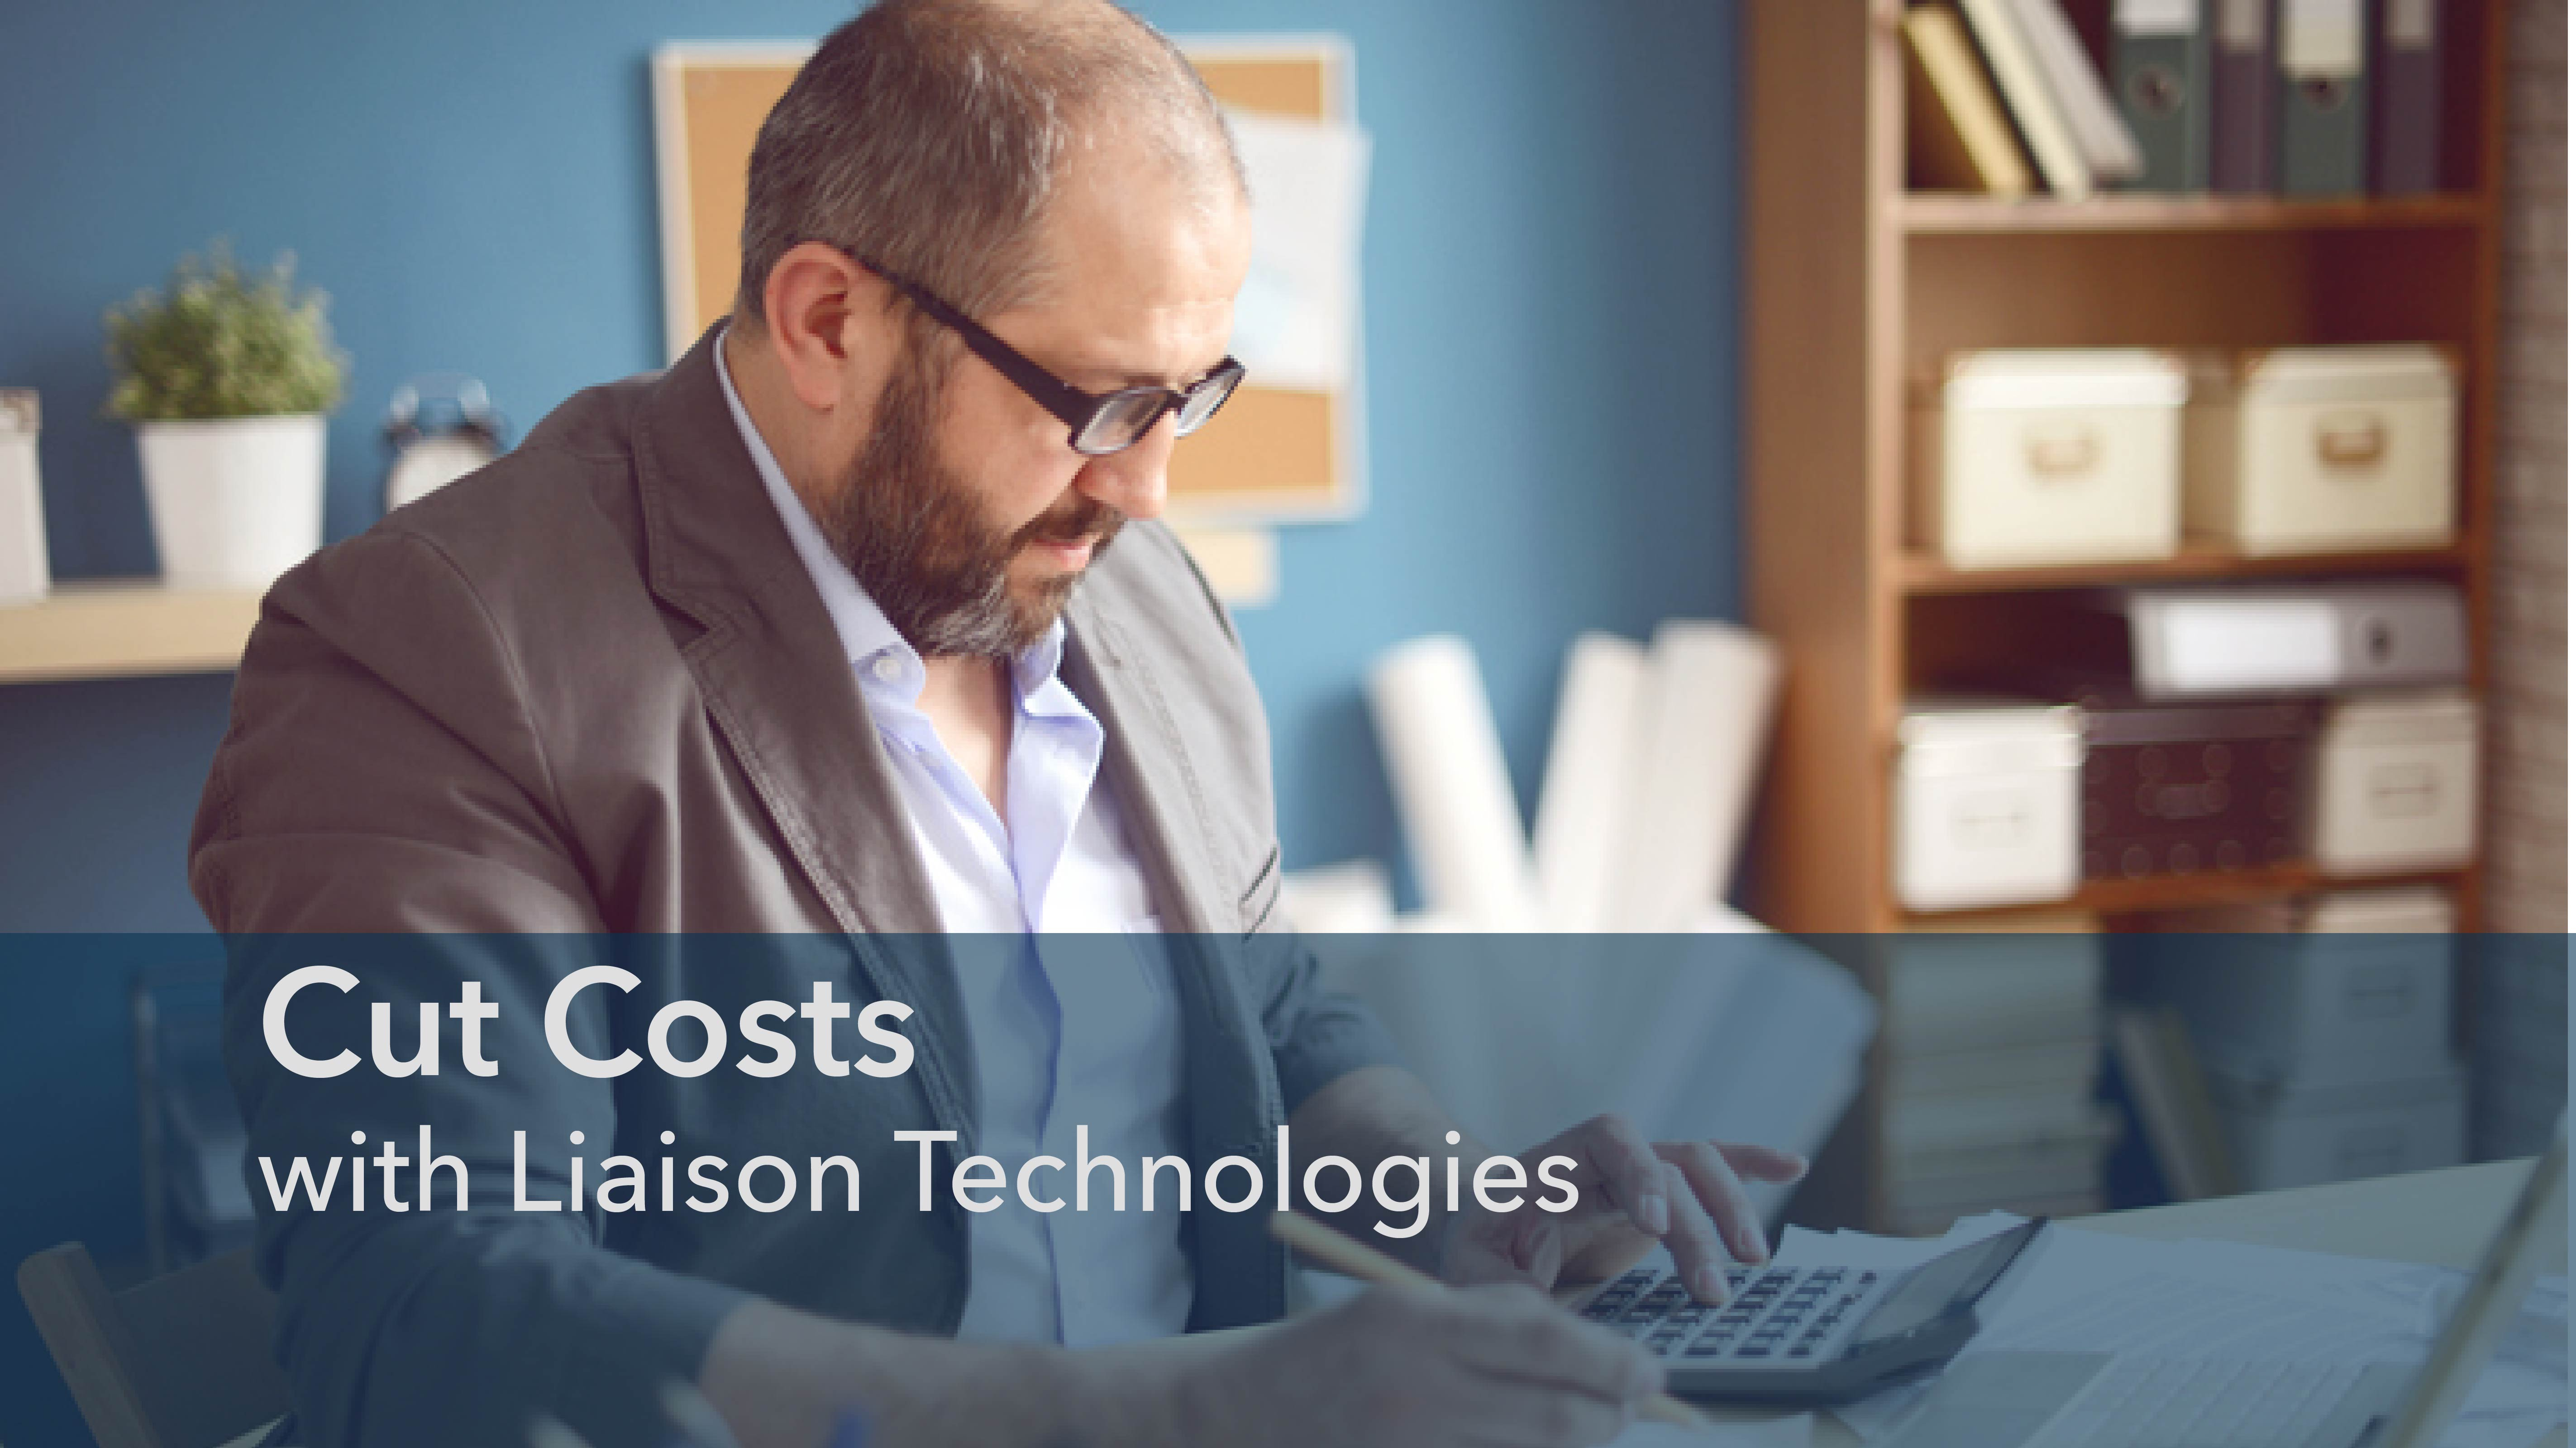 Cut Costs with Liaison Technologies